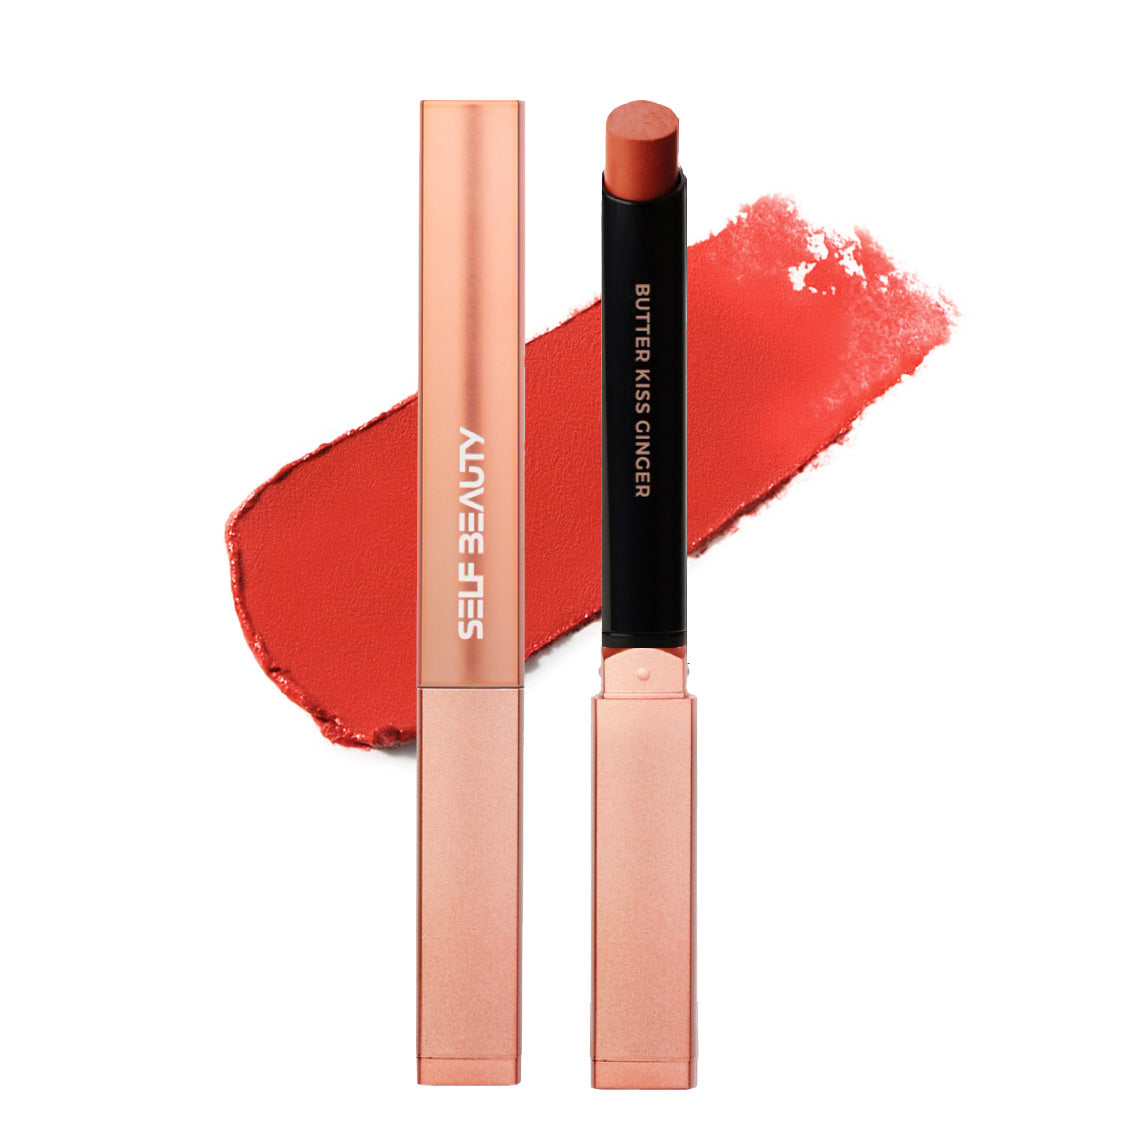 BEAUTITUDE Velvet Lipstick The Slim, Refillable & Replaceable - SELF BEAUTY